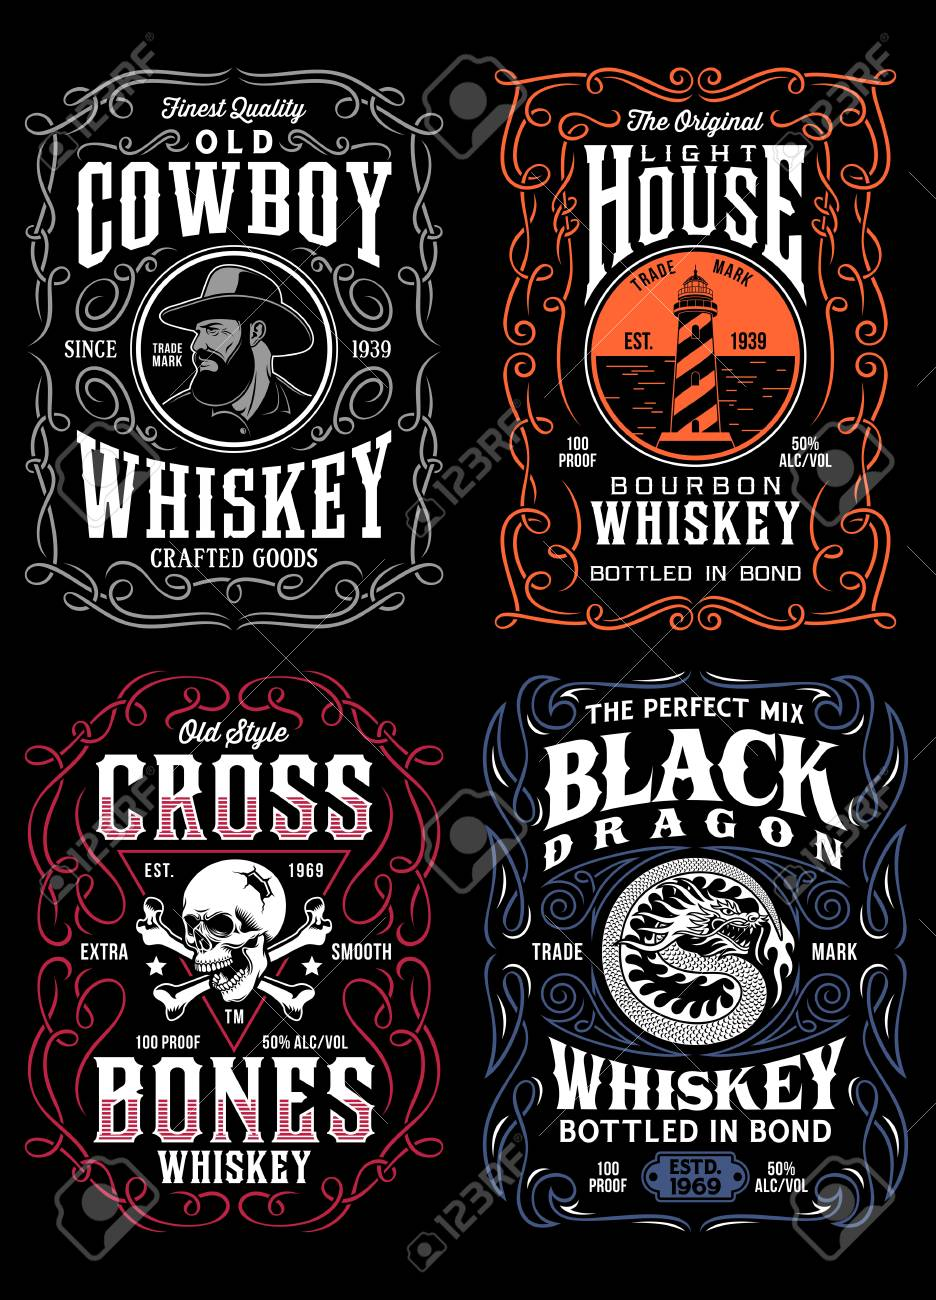 Vintage Whiskey Label T-shirt Graphic Collection - 109473104